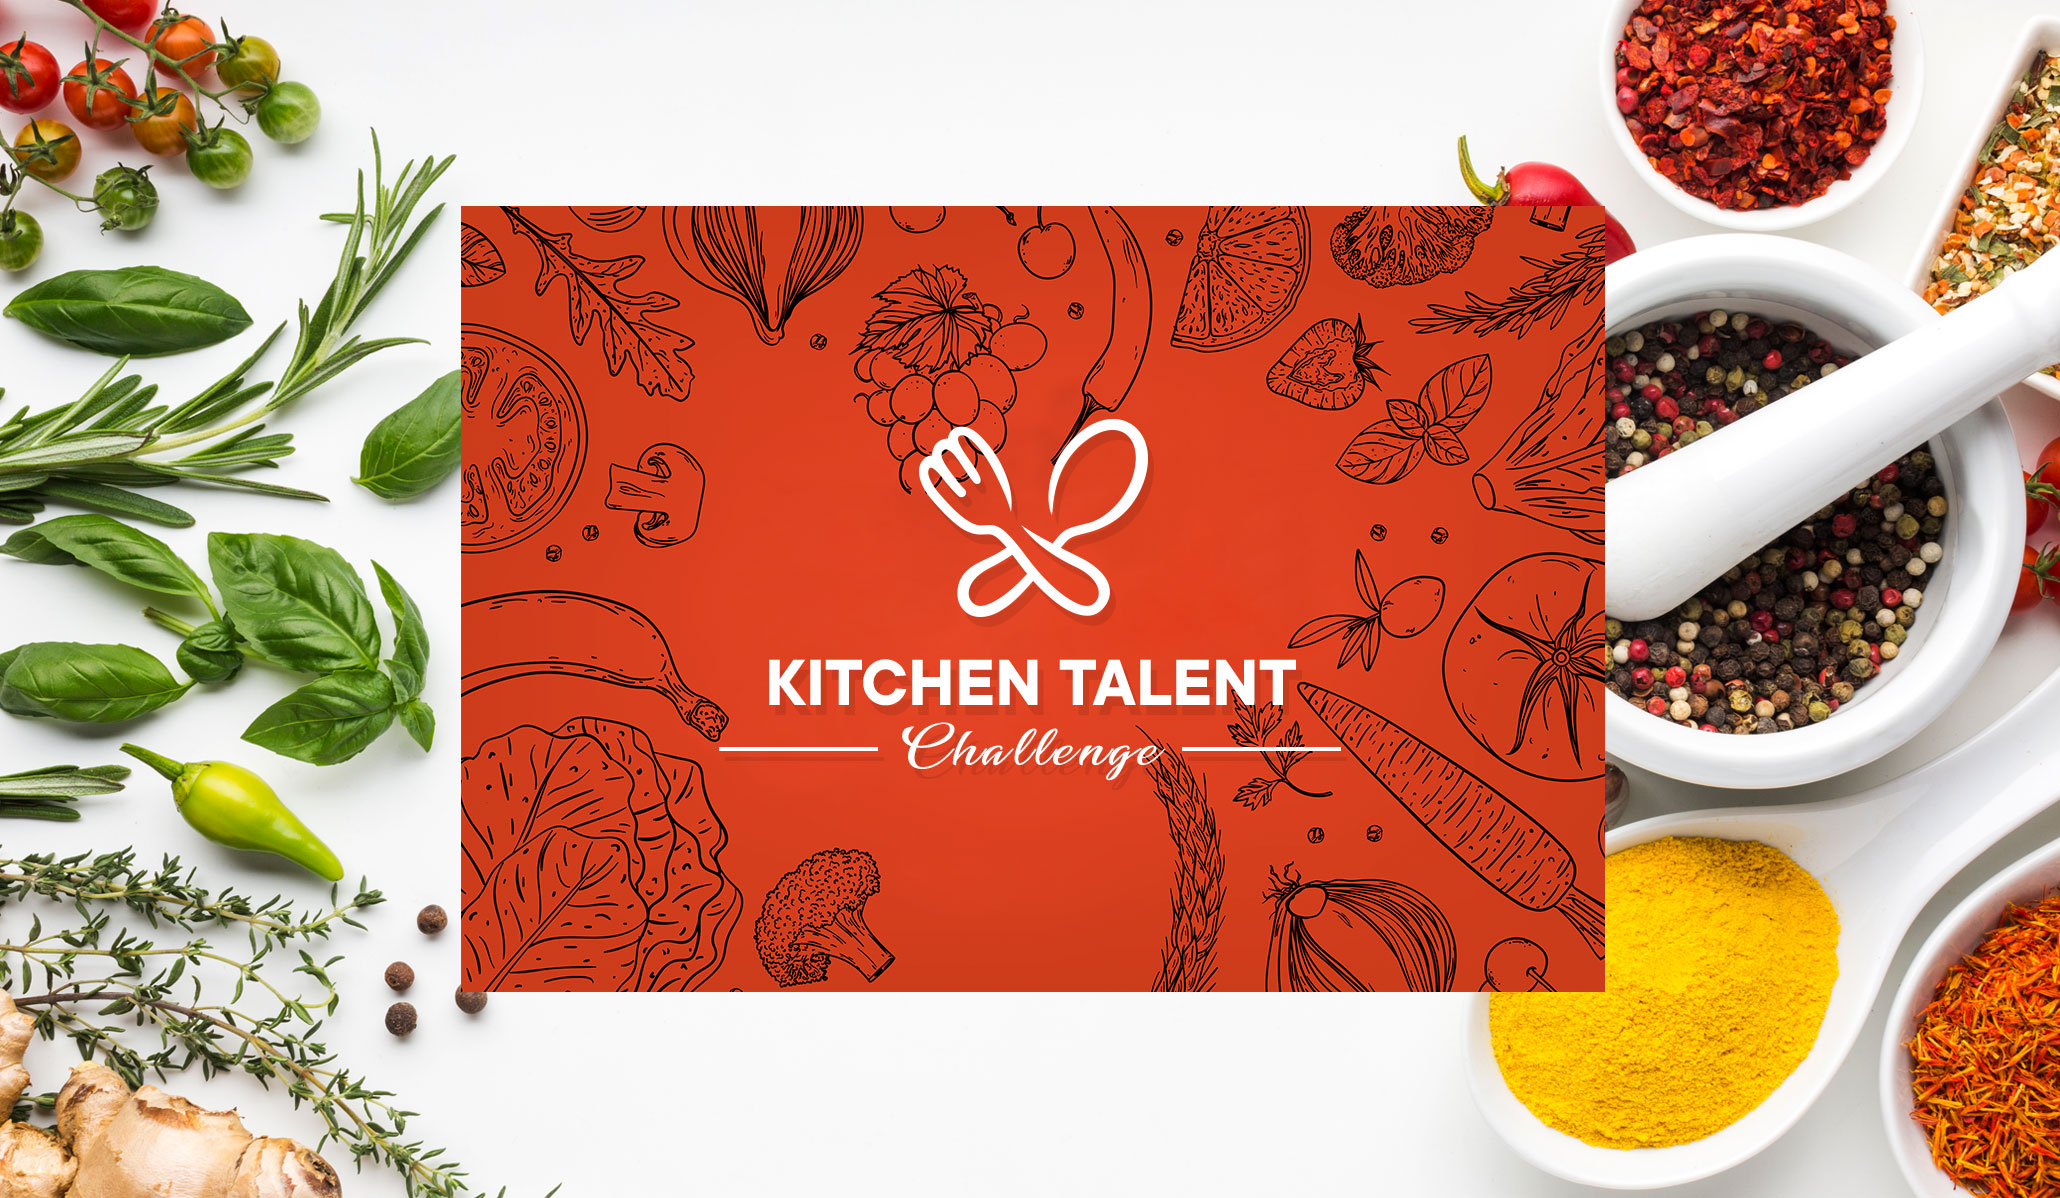 Kitchen Talent Challenge